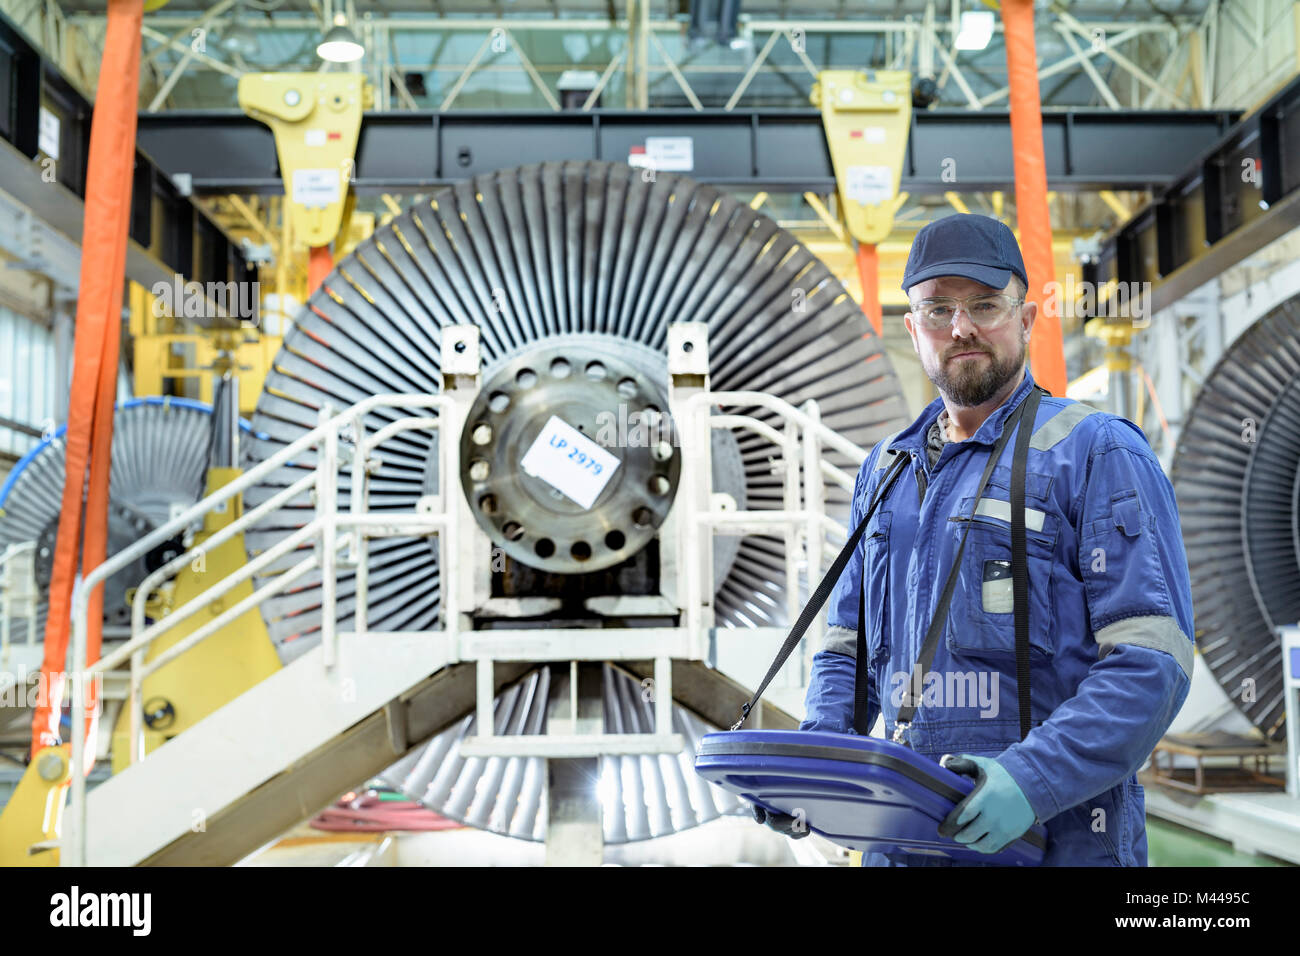 Crane operator with low pressure steam turbines in turbine maintenance factory - Stock Image